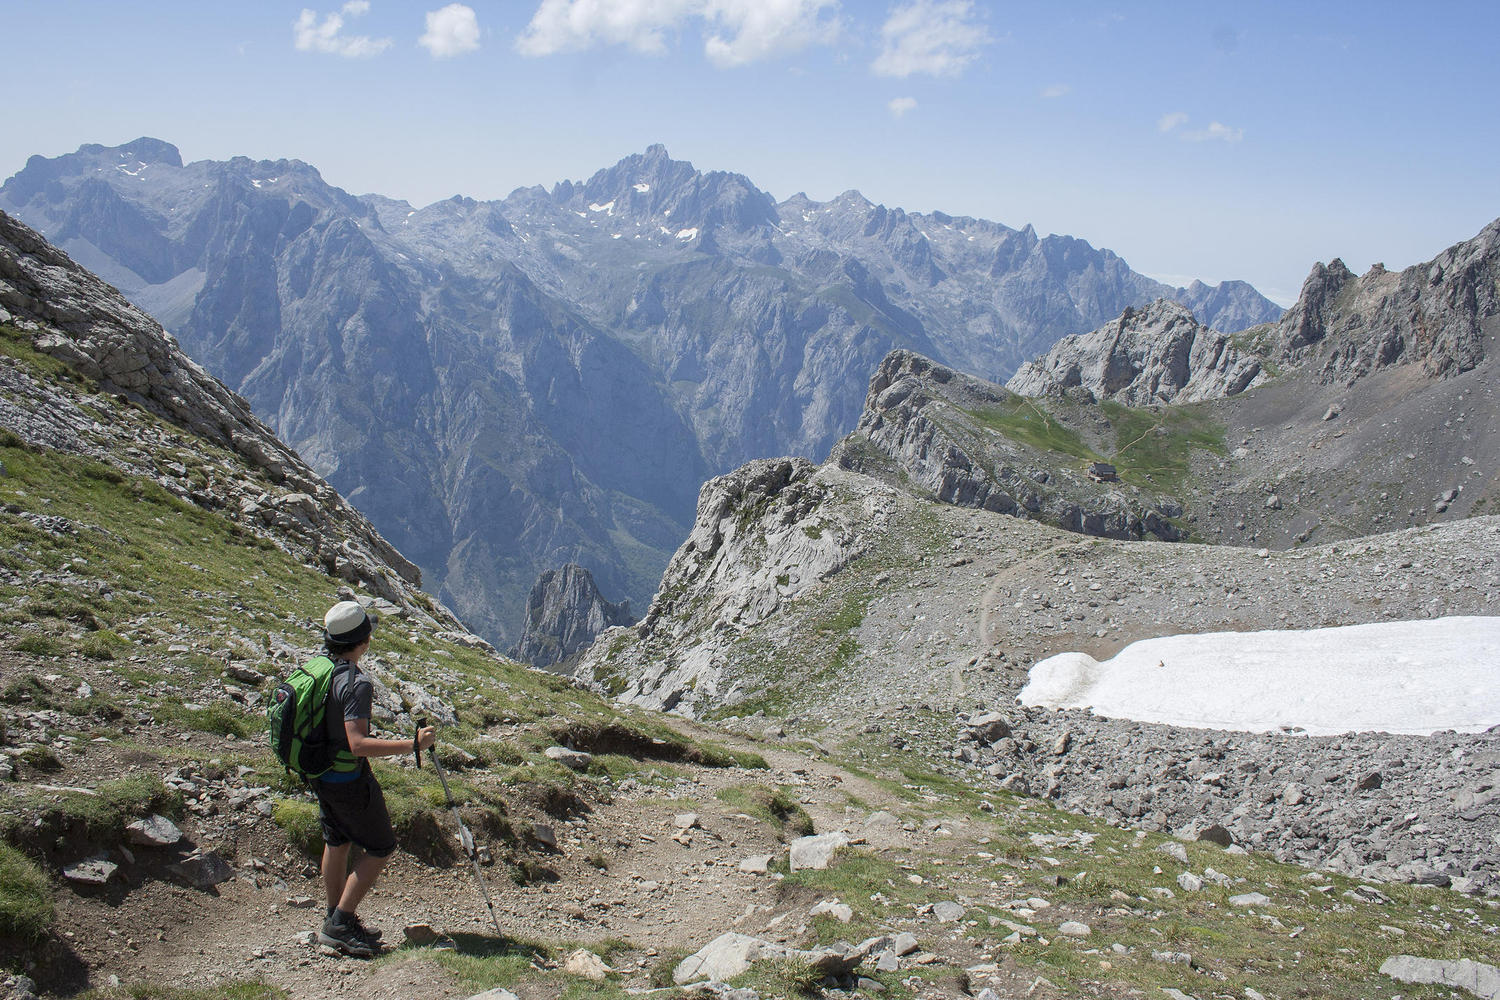 Summer hiking in the high trails of the Picos